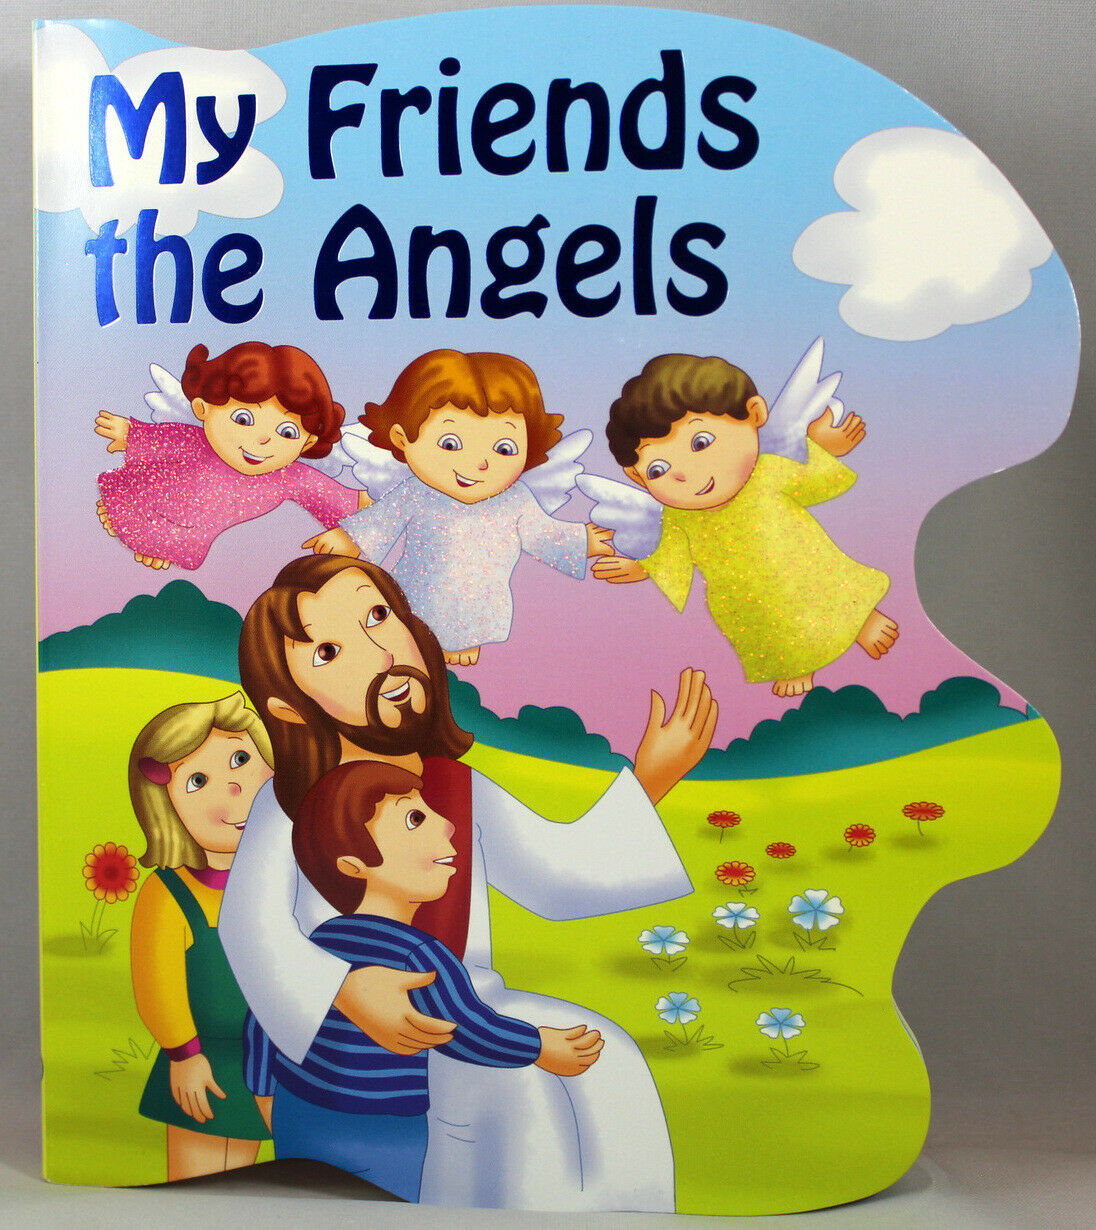 Primary image for My Friends the Angels Boardbook Kids St. Joseph Sparkle Books Ages 2-5 Childrens